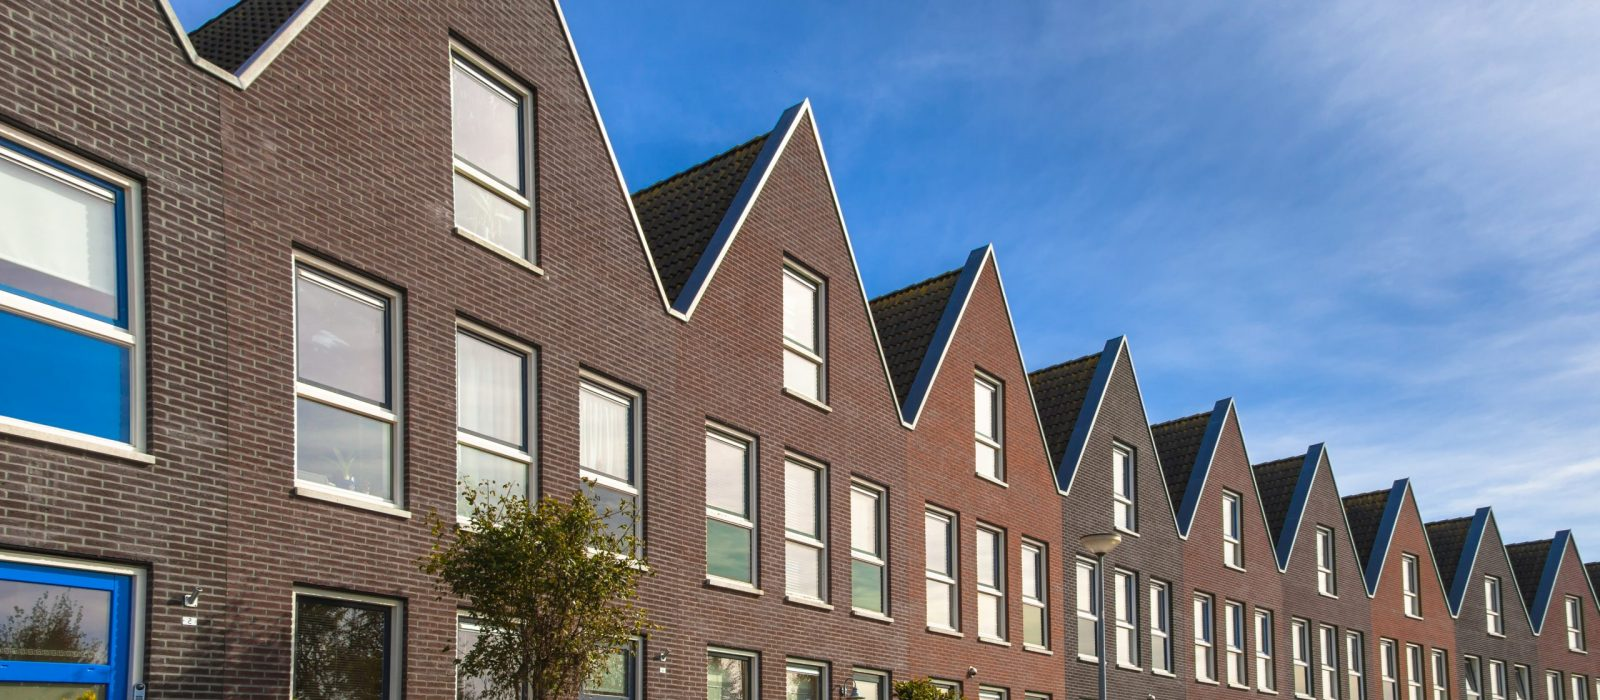 Modern Street with Terraced Real Estate for Families in the Netherlands